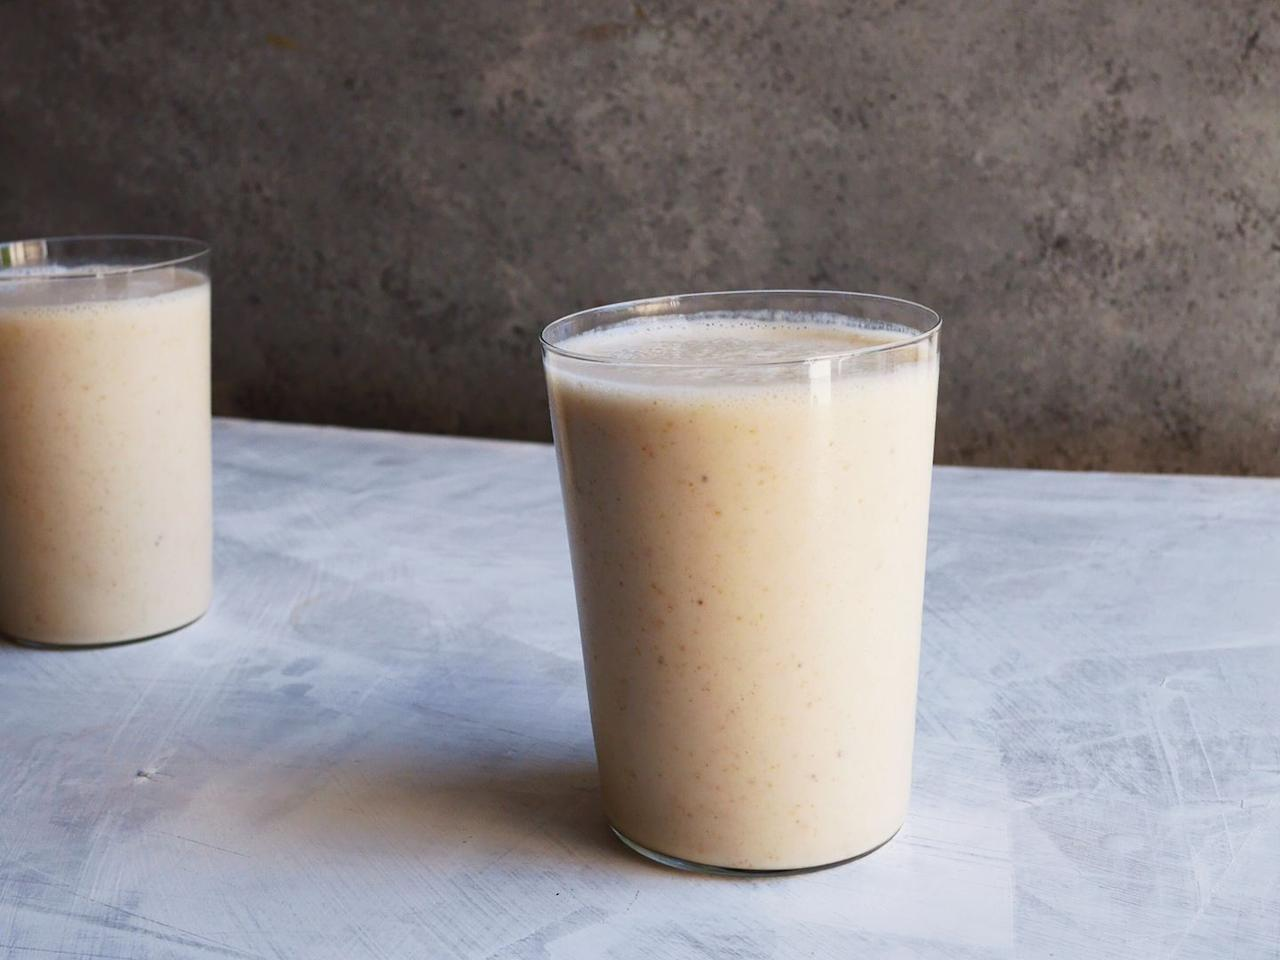 "<p>If you love banana milkshakes, this smoothie—packed with flaxseeds and yogurt—is its healthy BFF.</p><p>Get the <a href=""https://www.delish.com/uk/cocktails-drinks/a29990459/healthy-banana-smoothie-recipe/"" target=""_blank"">Banana Smoothie</a> recipe. </p>"